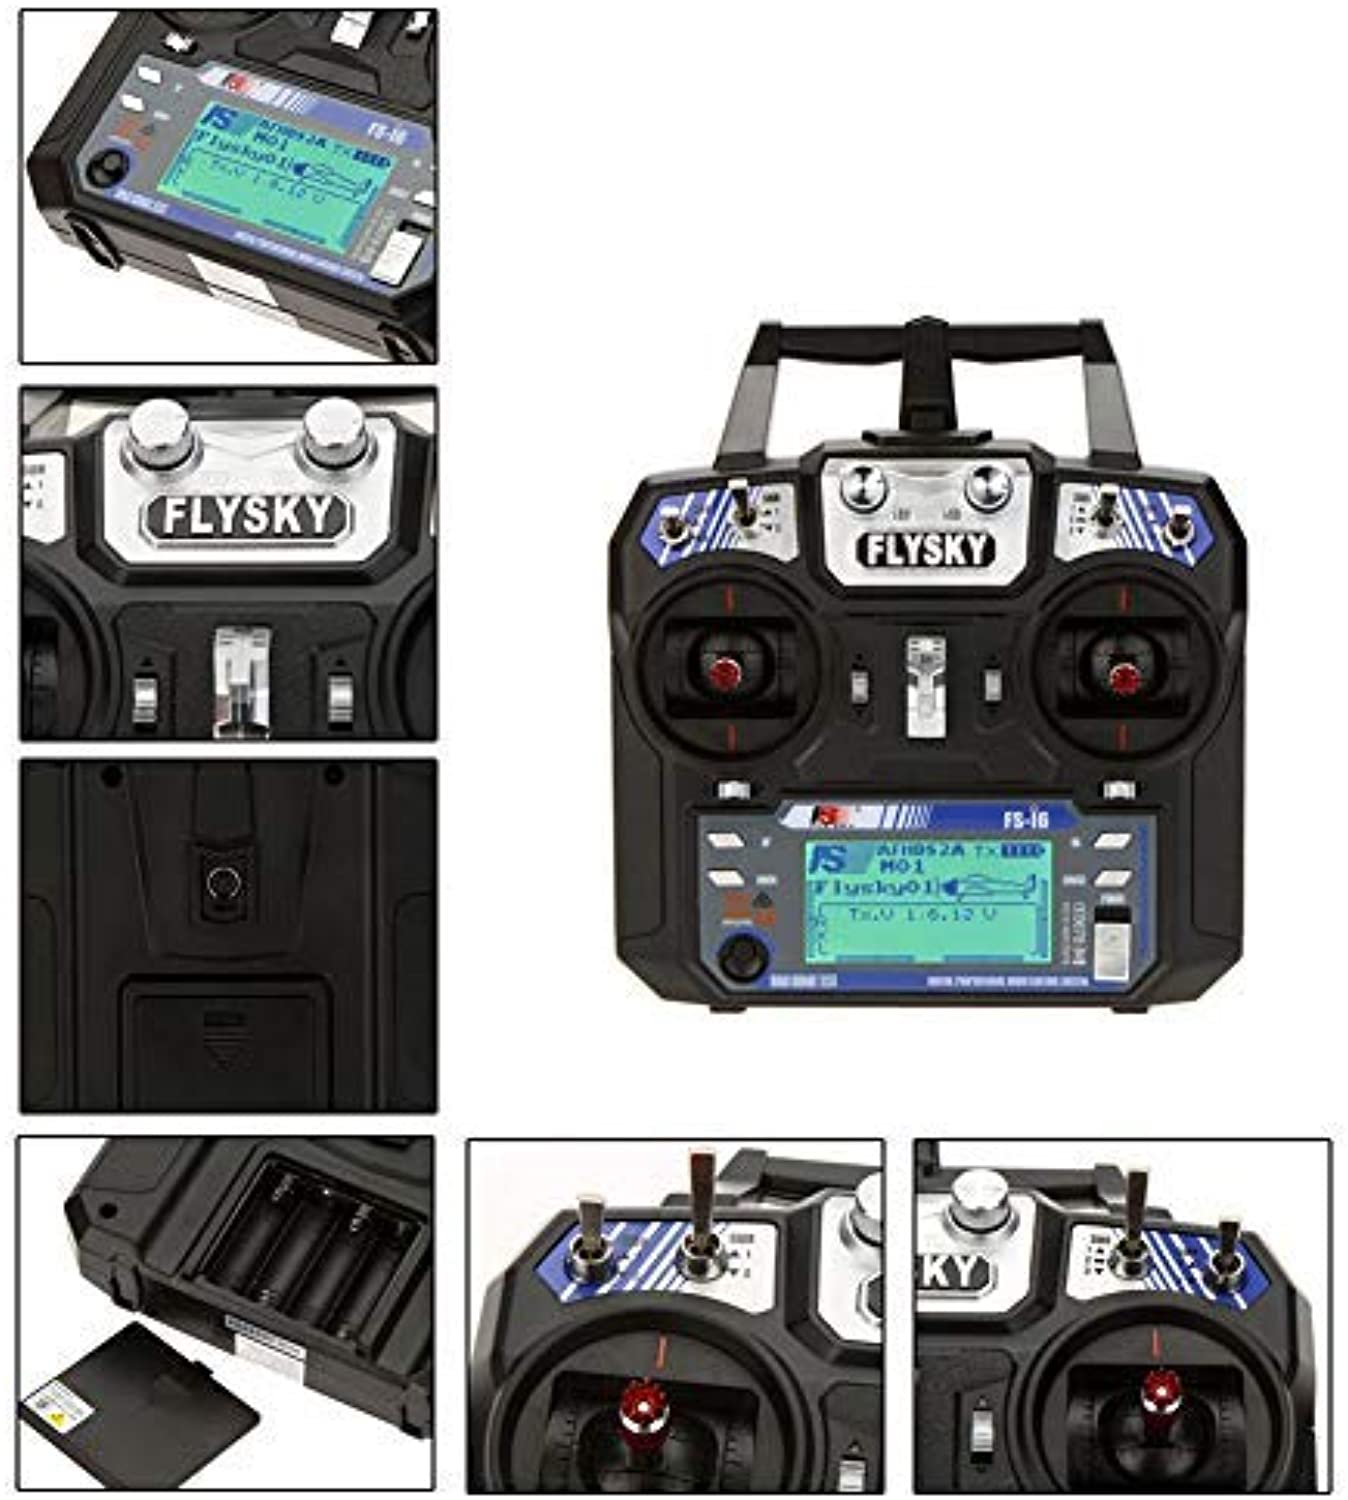 Gracorgzjs Flysky FSi6 2A 2.4GHz 6CH Radio System Transmitter Receiver for RC Helicopter